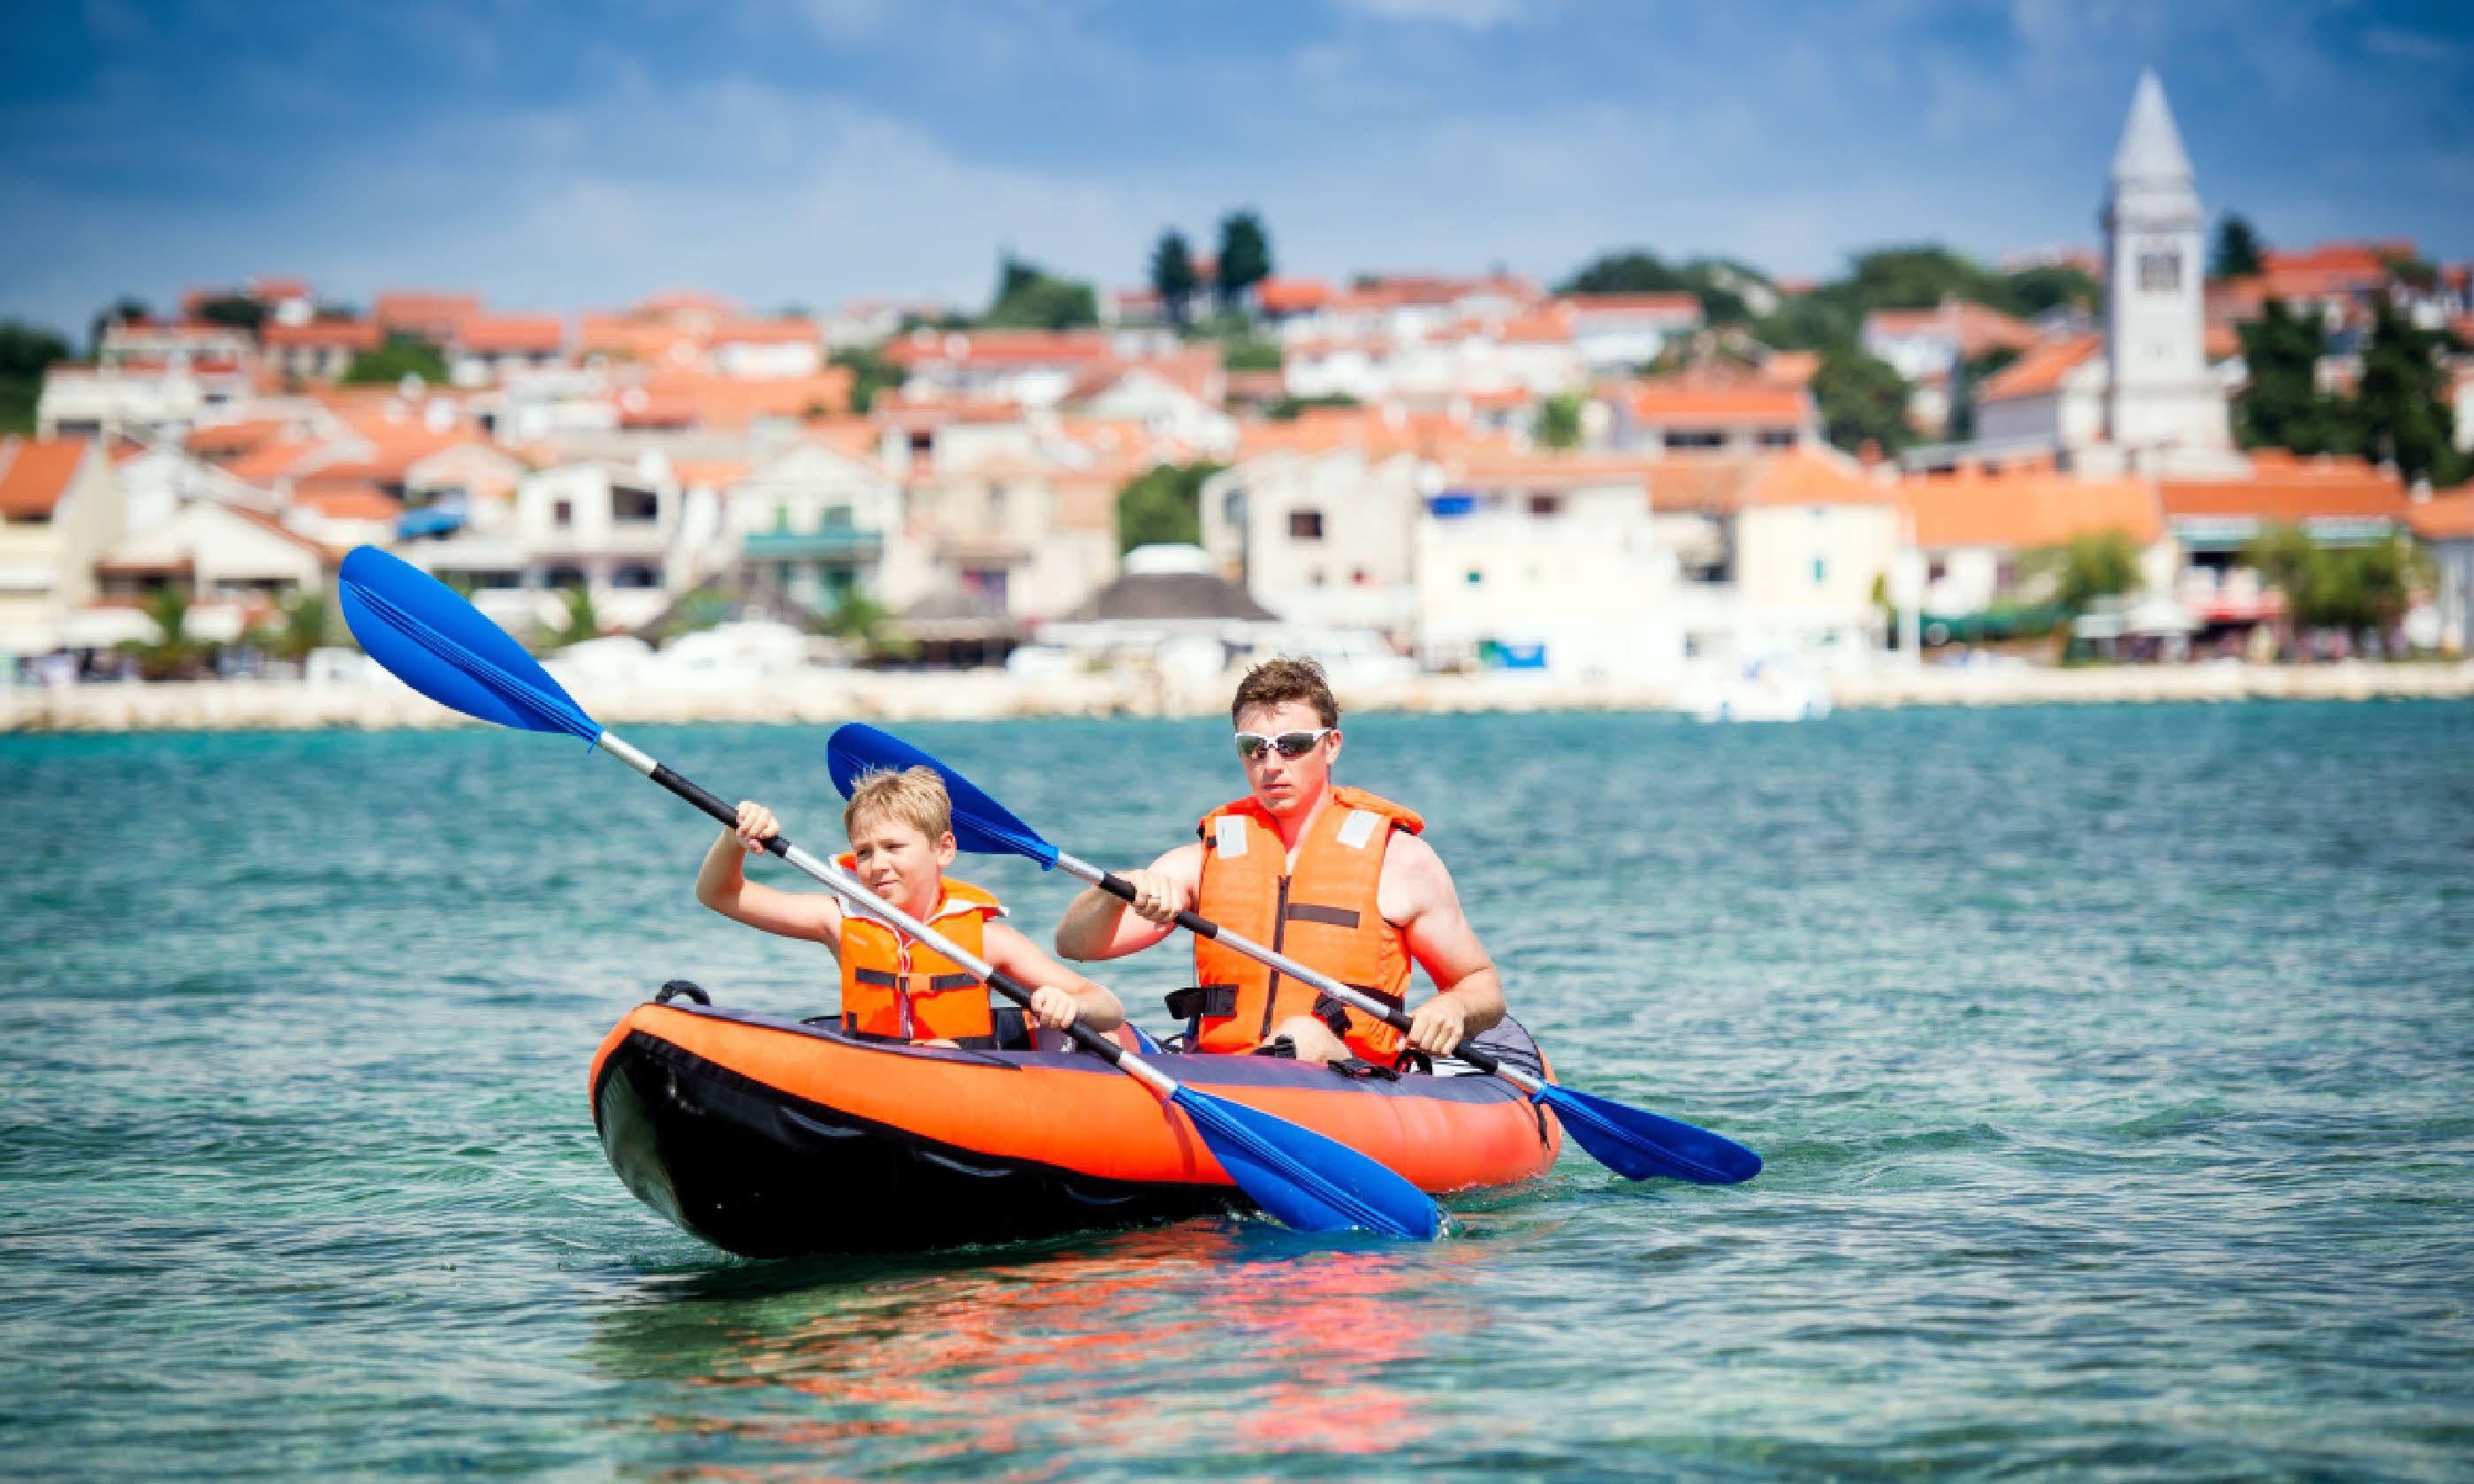 Kayaking in Croatia (Shutterstock)